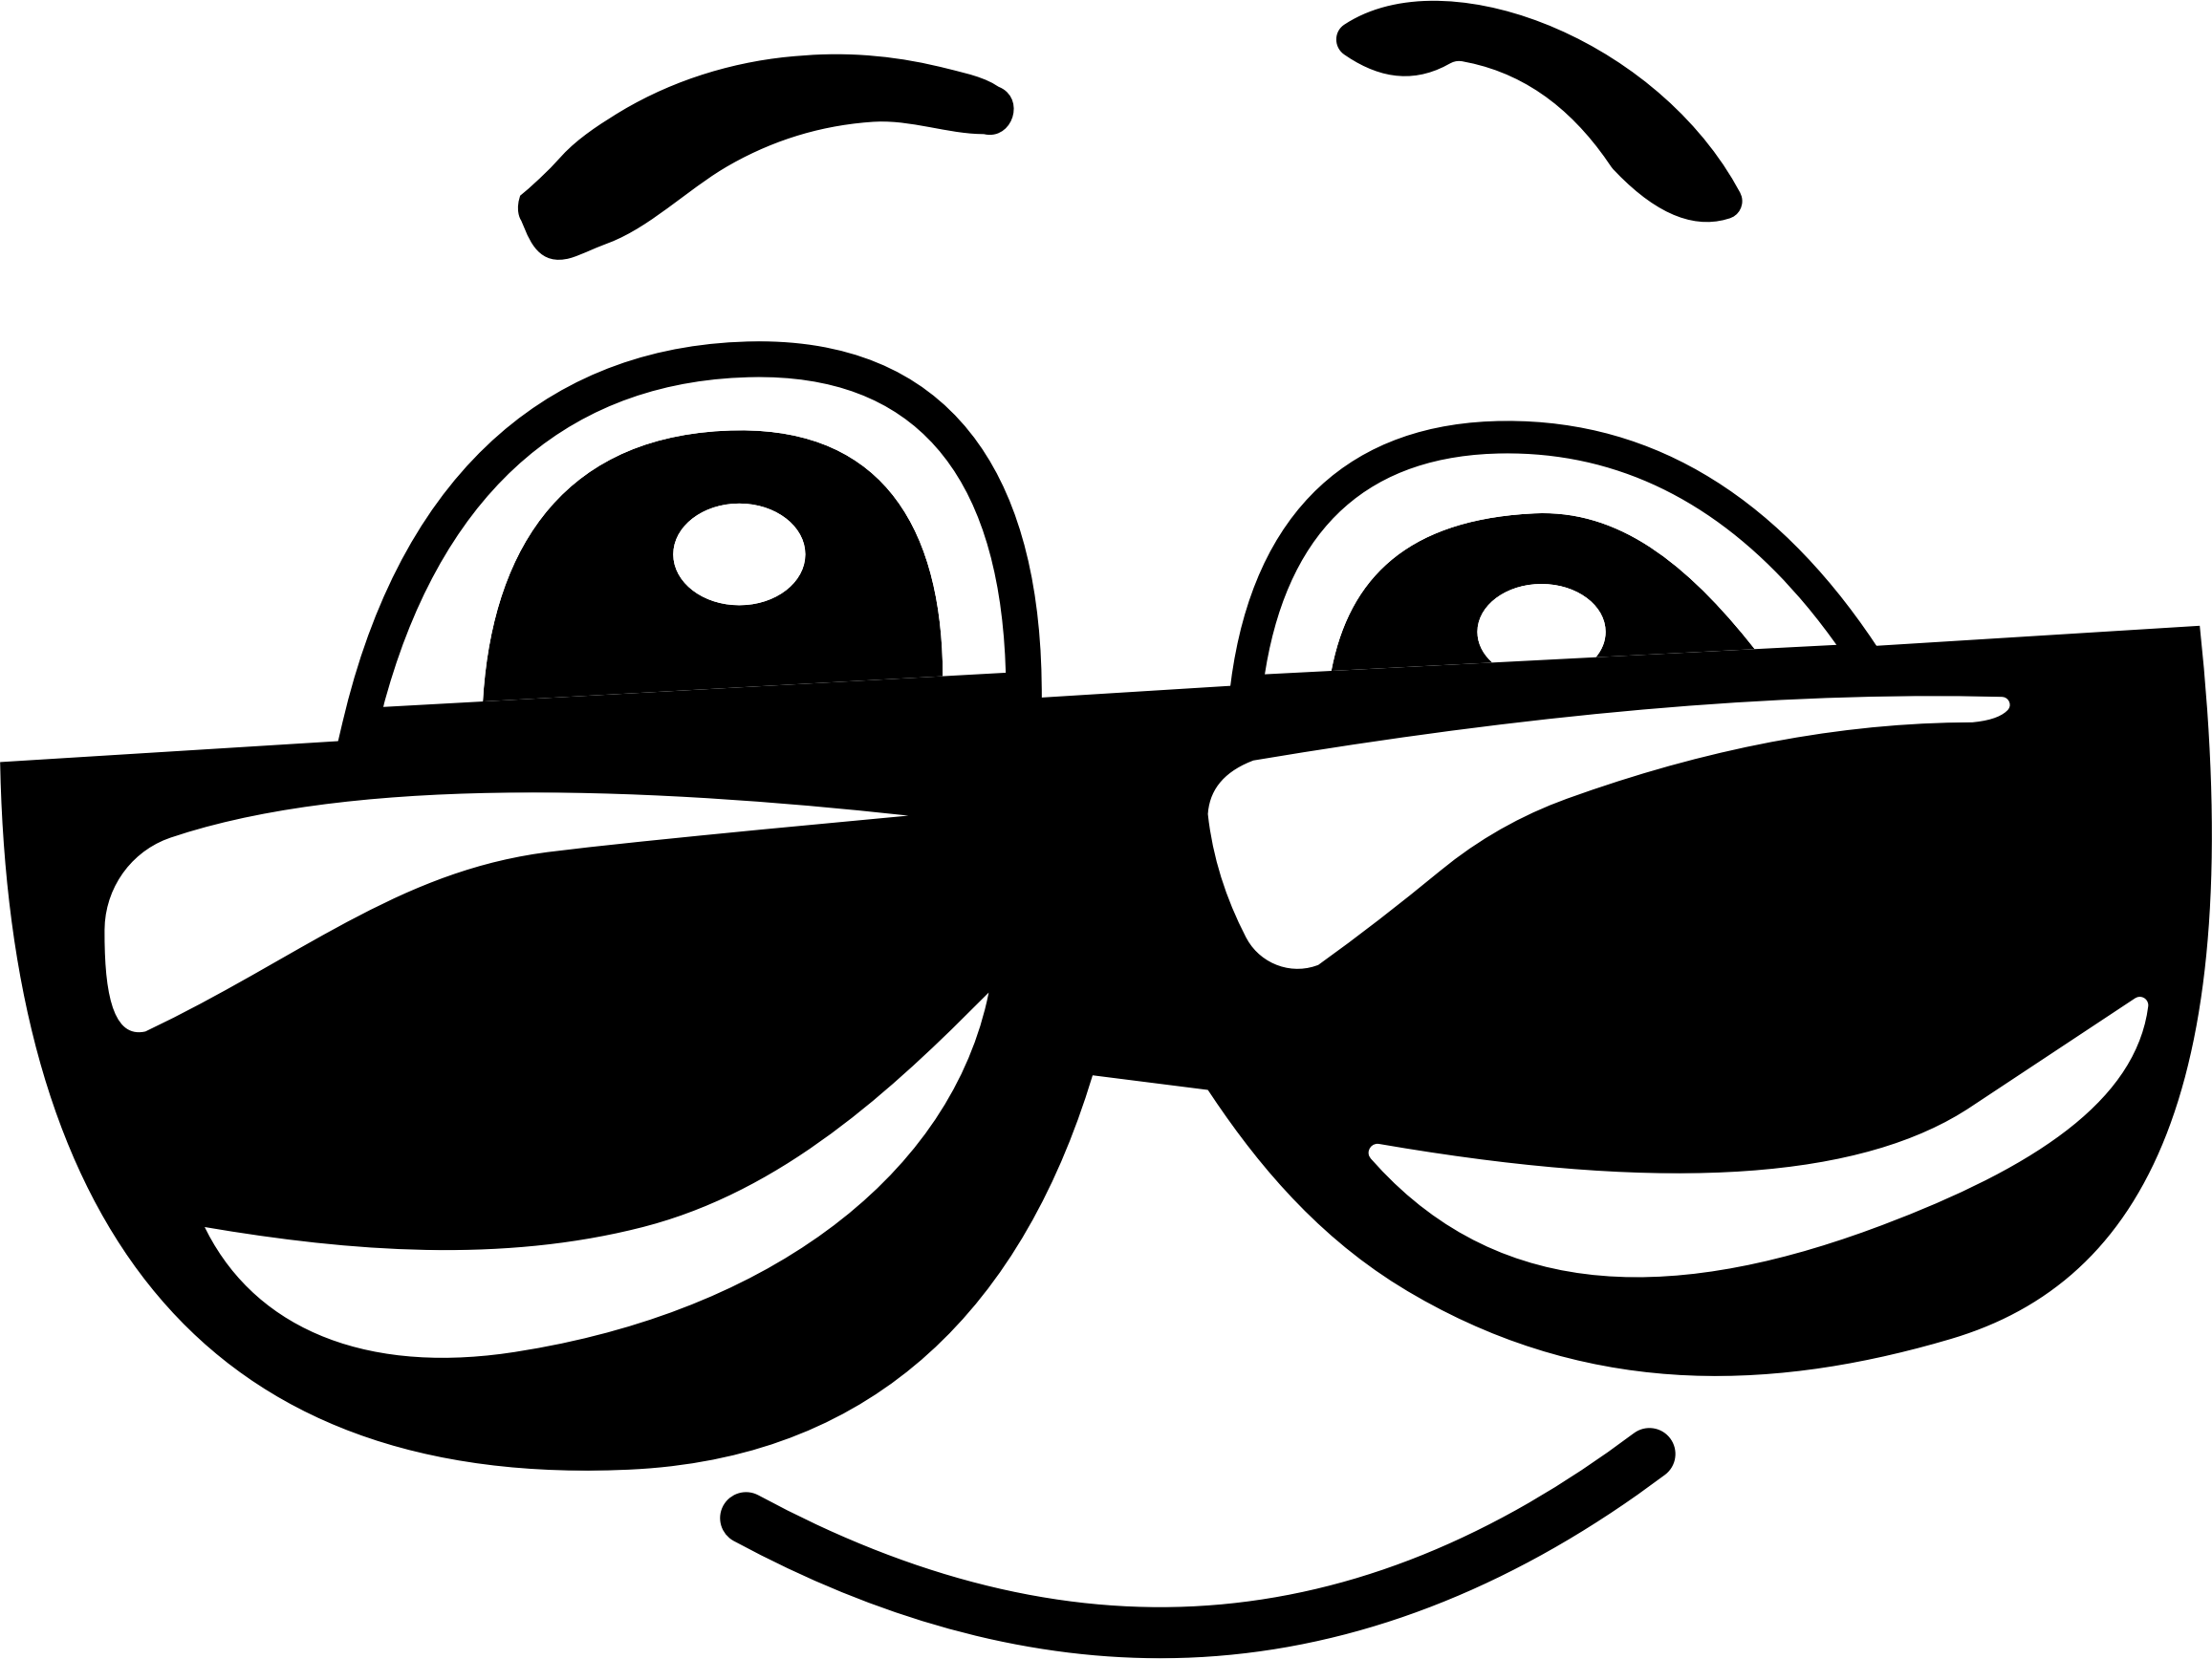 Smiley face png black and white. Sunglasses icons free downloads